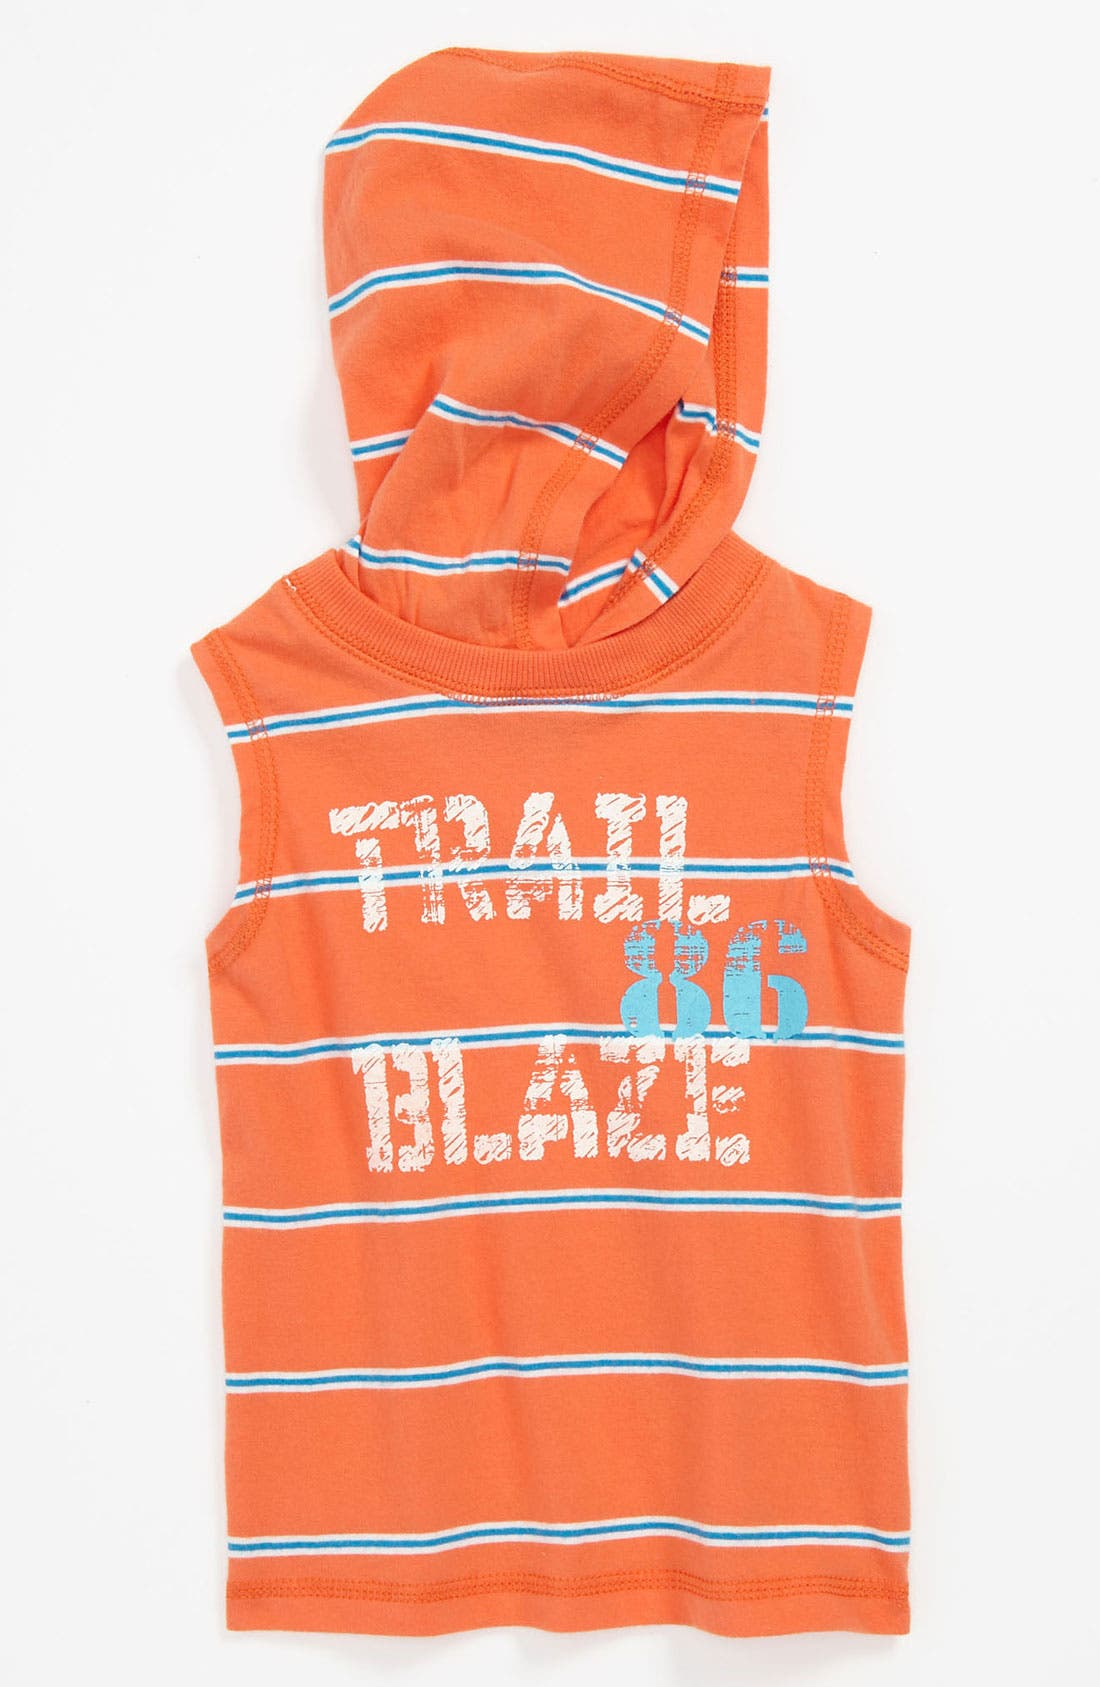 Alternate Image 1 Selected - Pumpkin Patch Hooded Top (Baby)